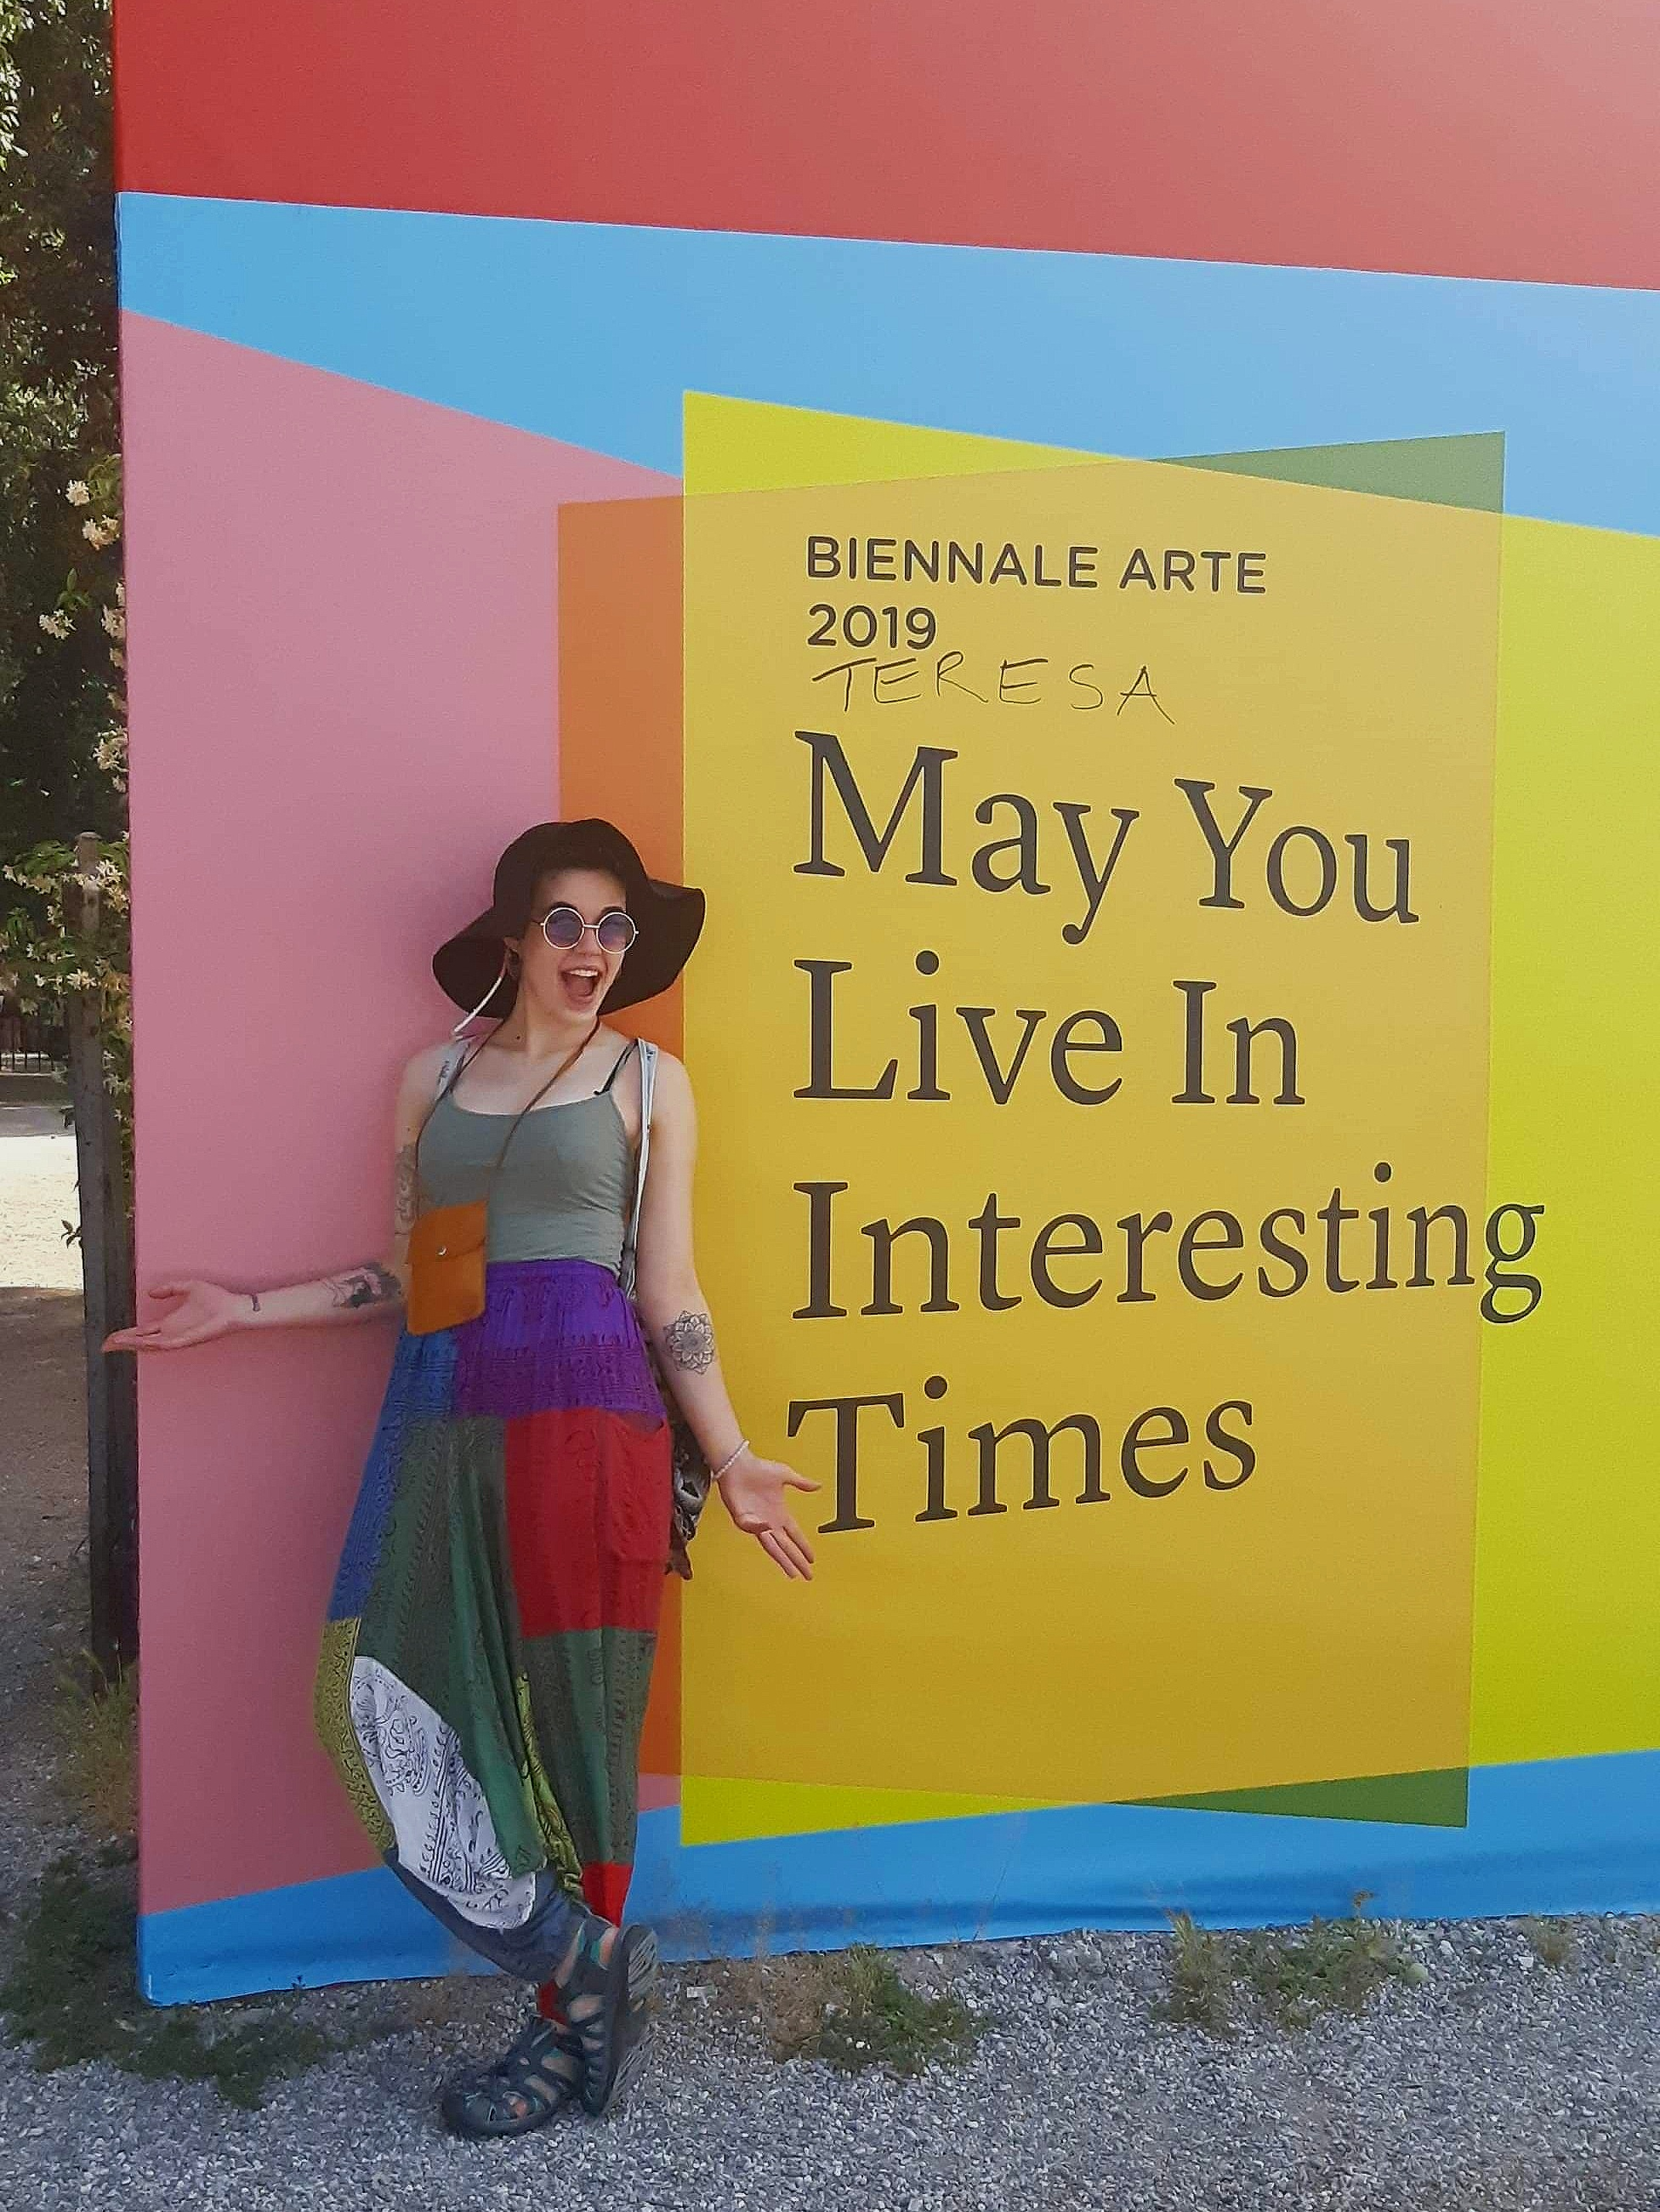 Meet field school blogger Leah, pictured here at the entrance to the Venice Biennale.